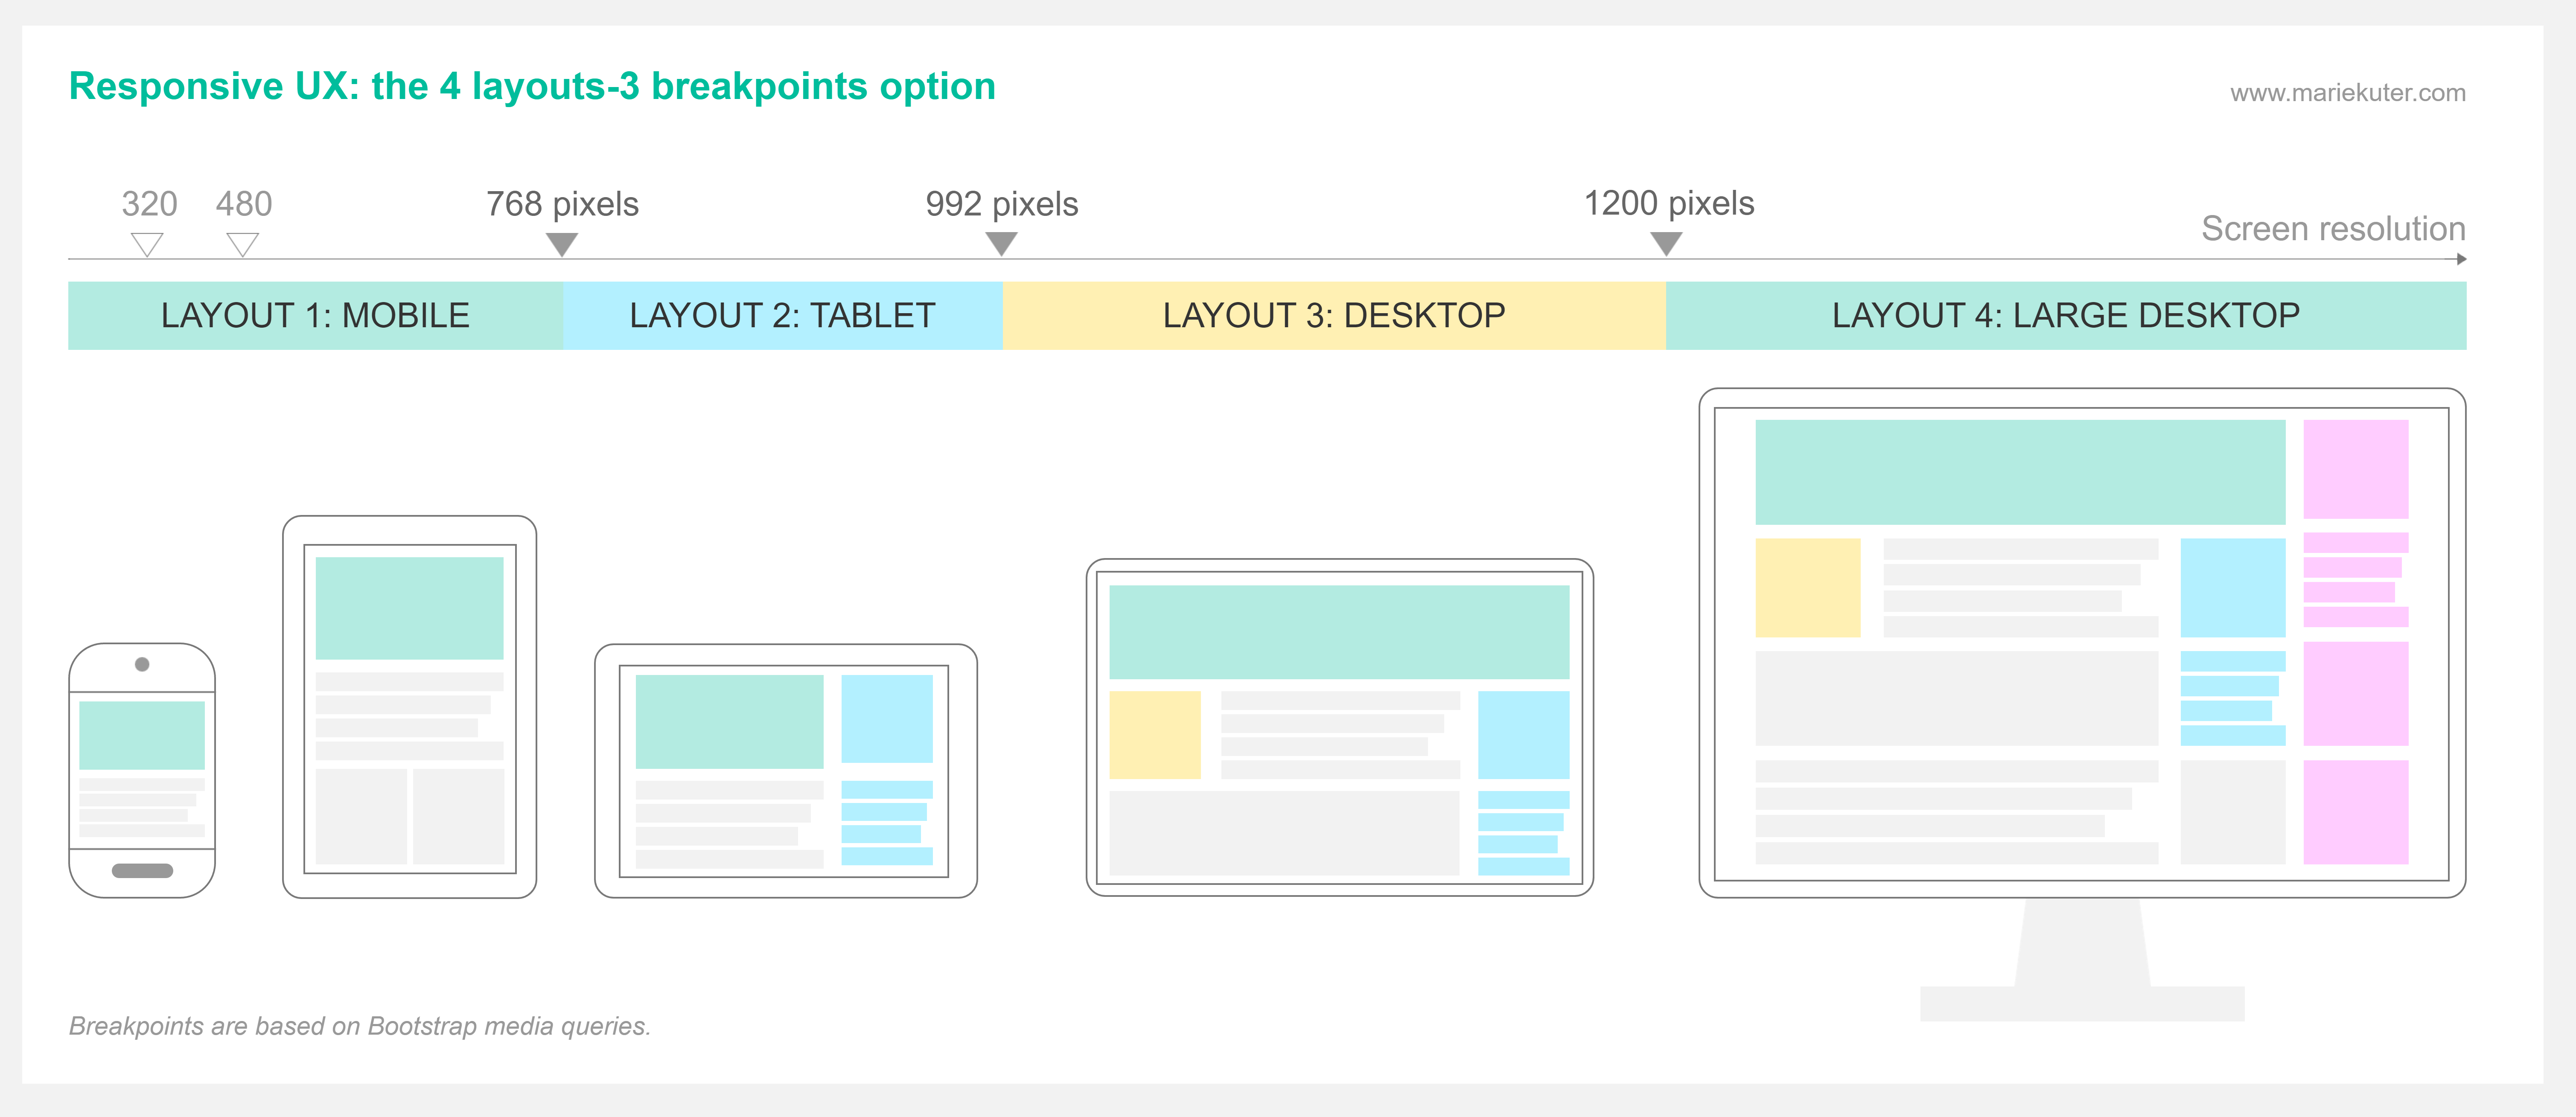 Responsive UX Breakpoints: the 4 layouts, 3 breakpoints option